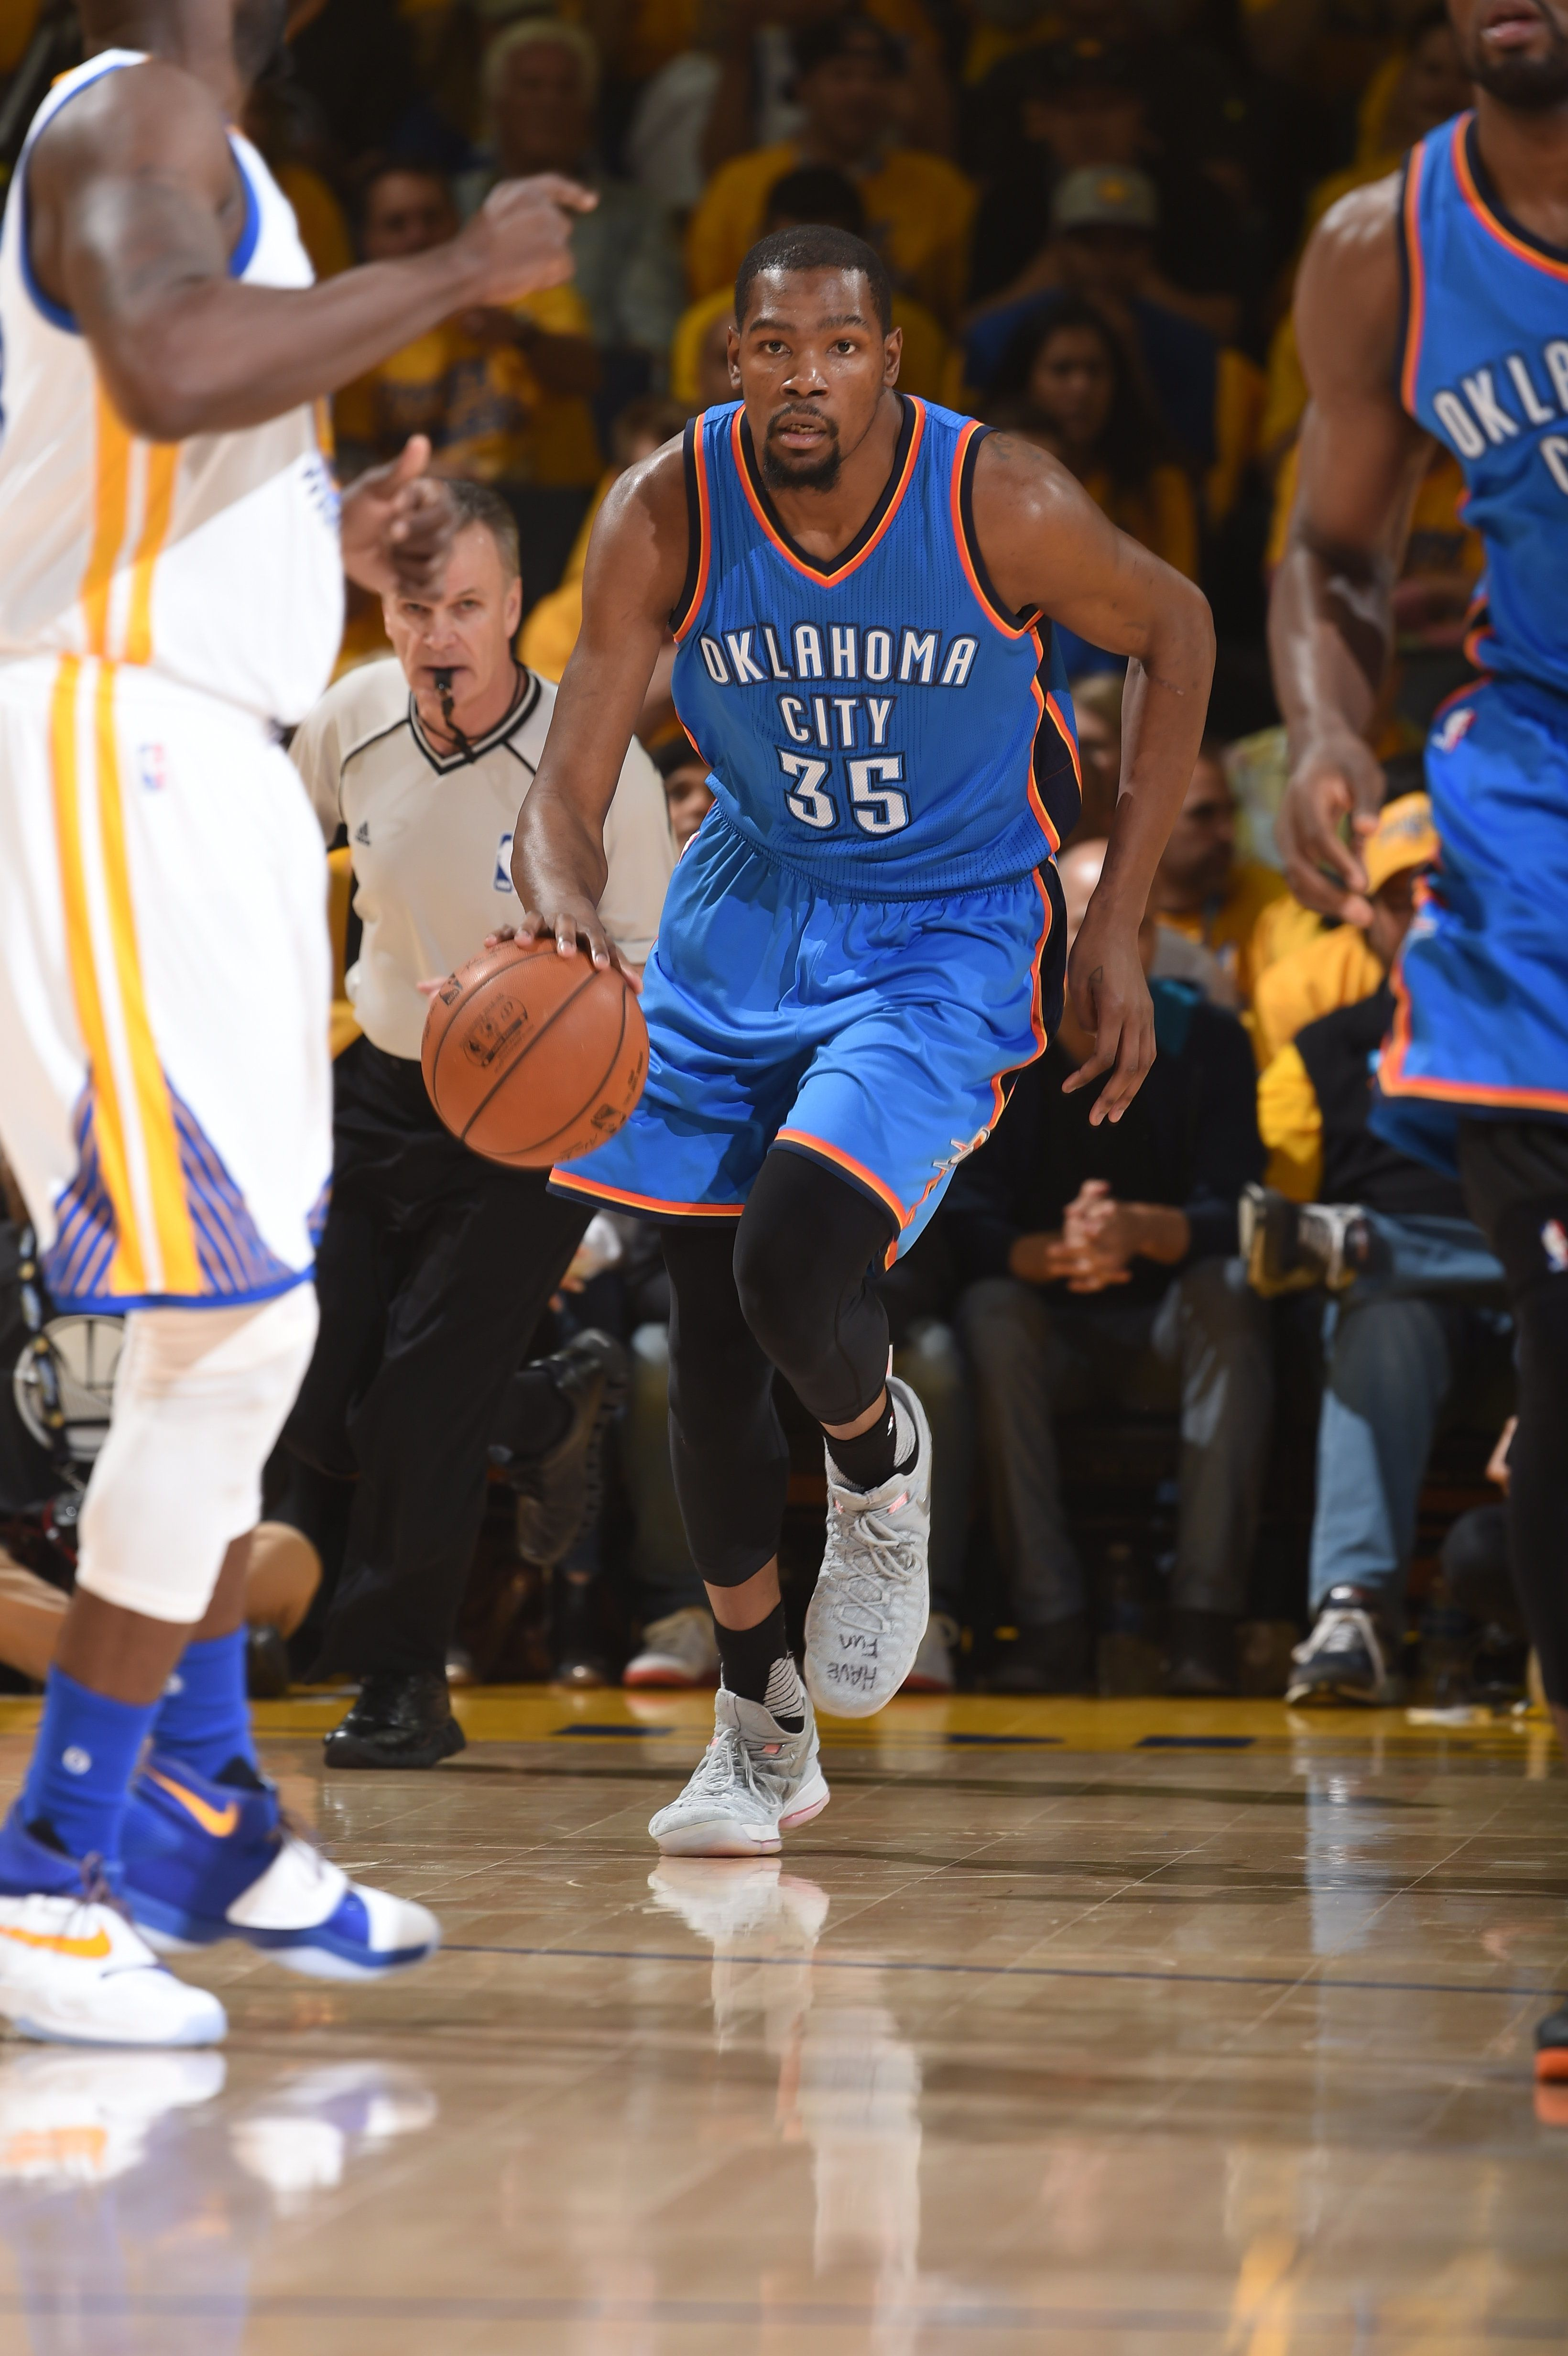 OAKLAND, CA - MAY 30: Kevin Durant #35 of the Oklahoma City Thunder drives to the basket against the Golden State Warriors during Game Seven of the Western Conference Finals during the 2016 NBA Playoffs on May 30, 2016 at ORACLE Arena in Oakland, California. NOTE TO USER: User expressly acknowledges and agrees that, by downloading and or using this Photograph, user is consenting to the terms and conditions of the Getty Images License Agreement. Mandatory Copyright Notice: Copyright 2016 NBAE (Photo by Andrew Bernstein/NBAE via Getty Images)